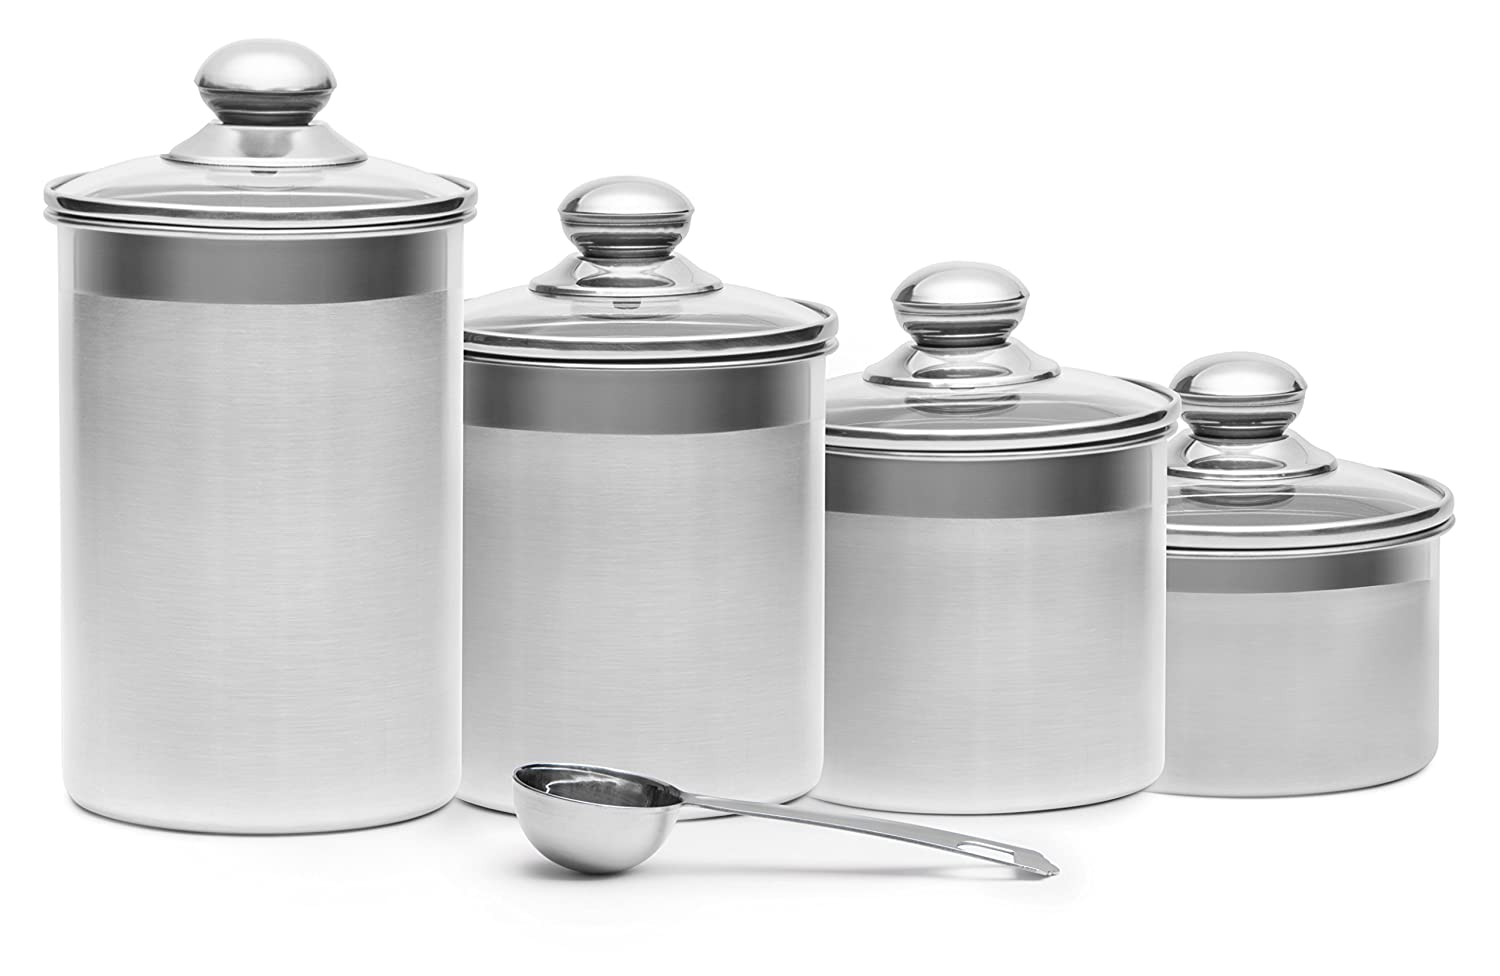 amazon best sellers best food bins canisters steel 4 piece stainless steel canister set with scoop and lids